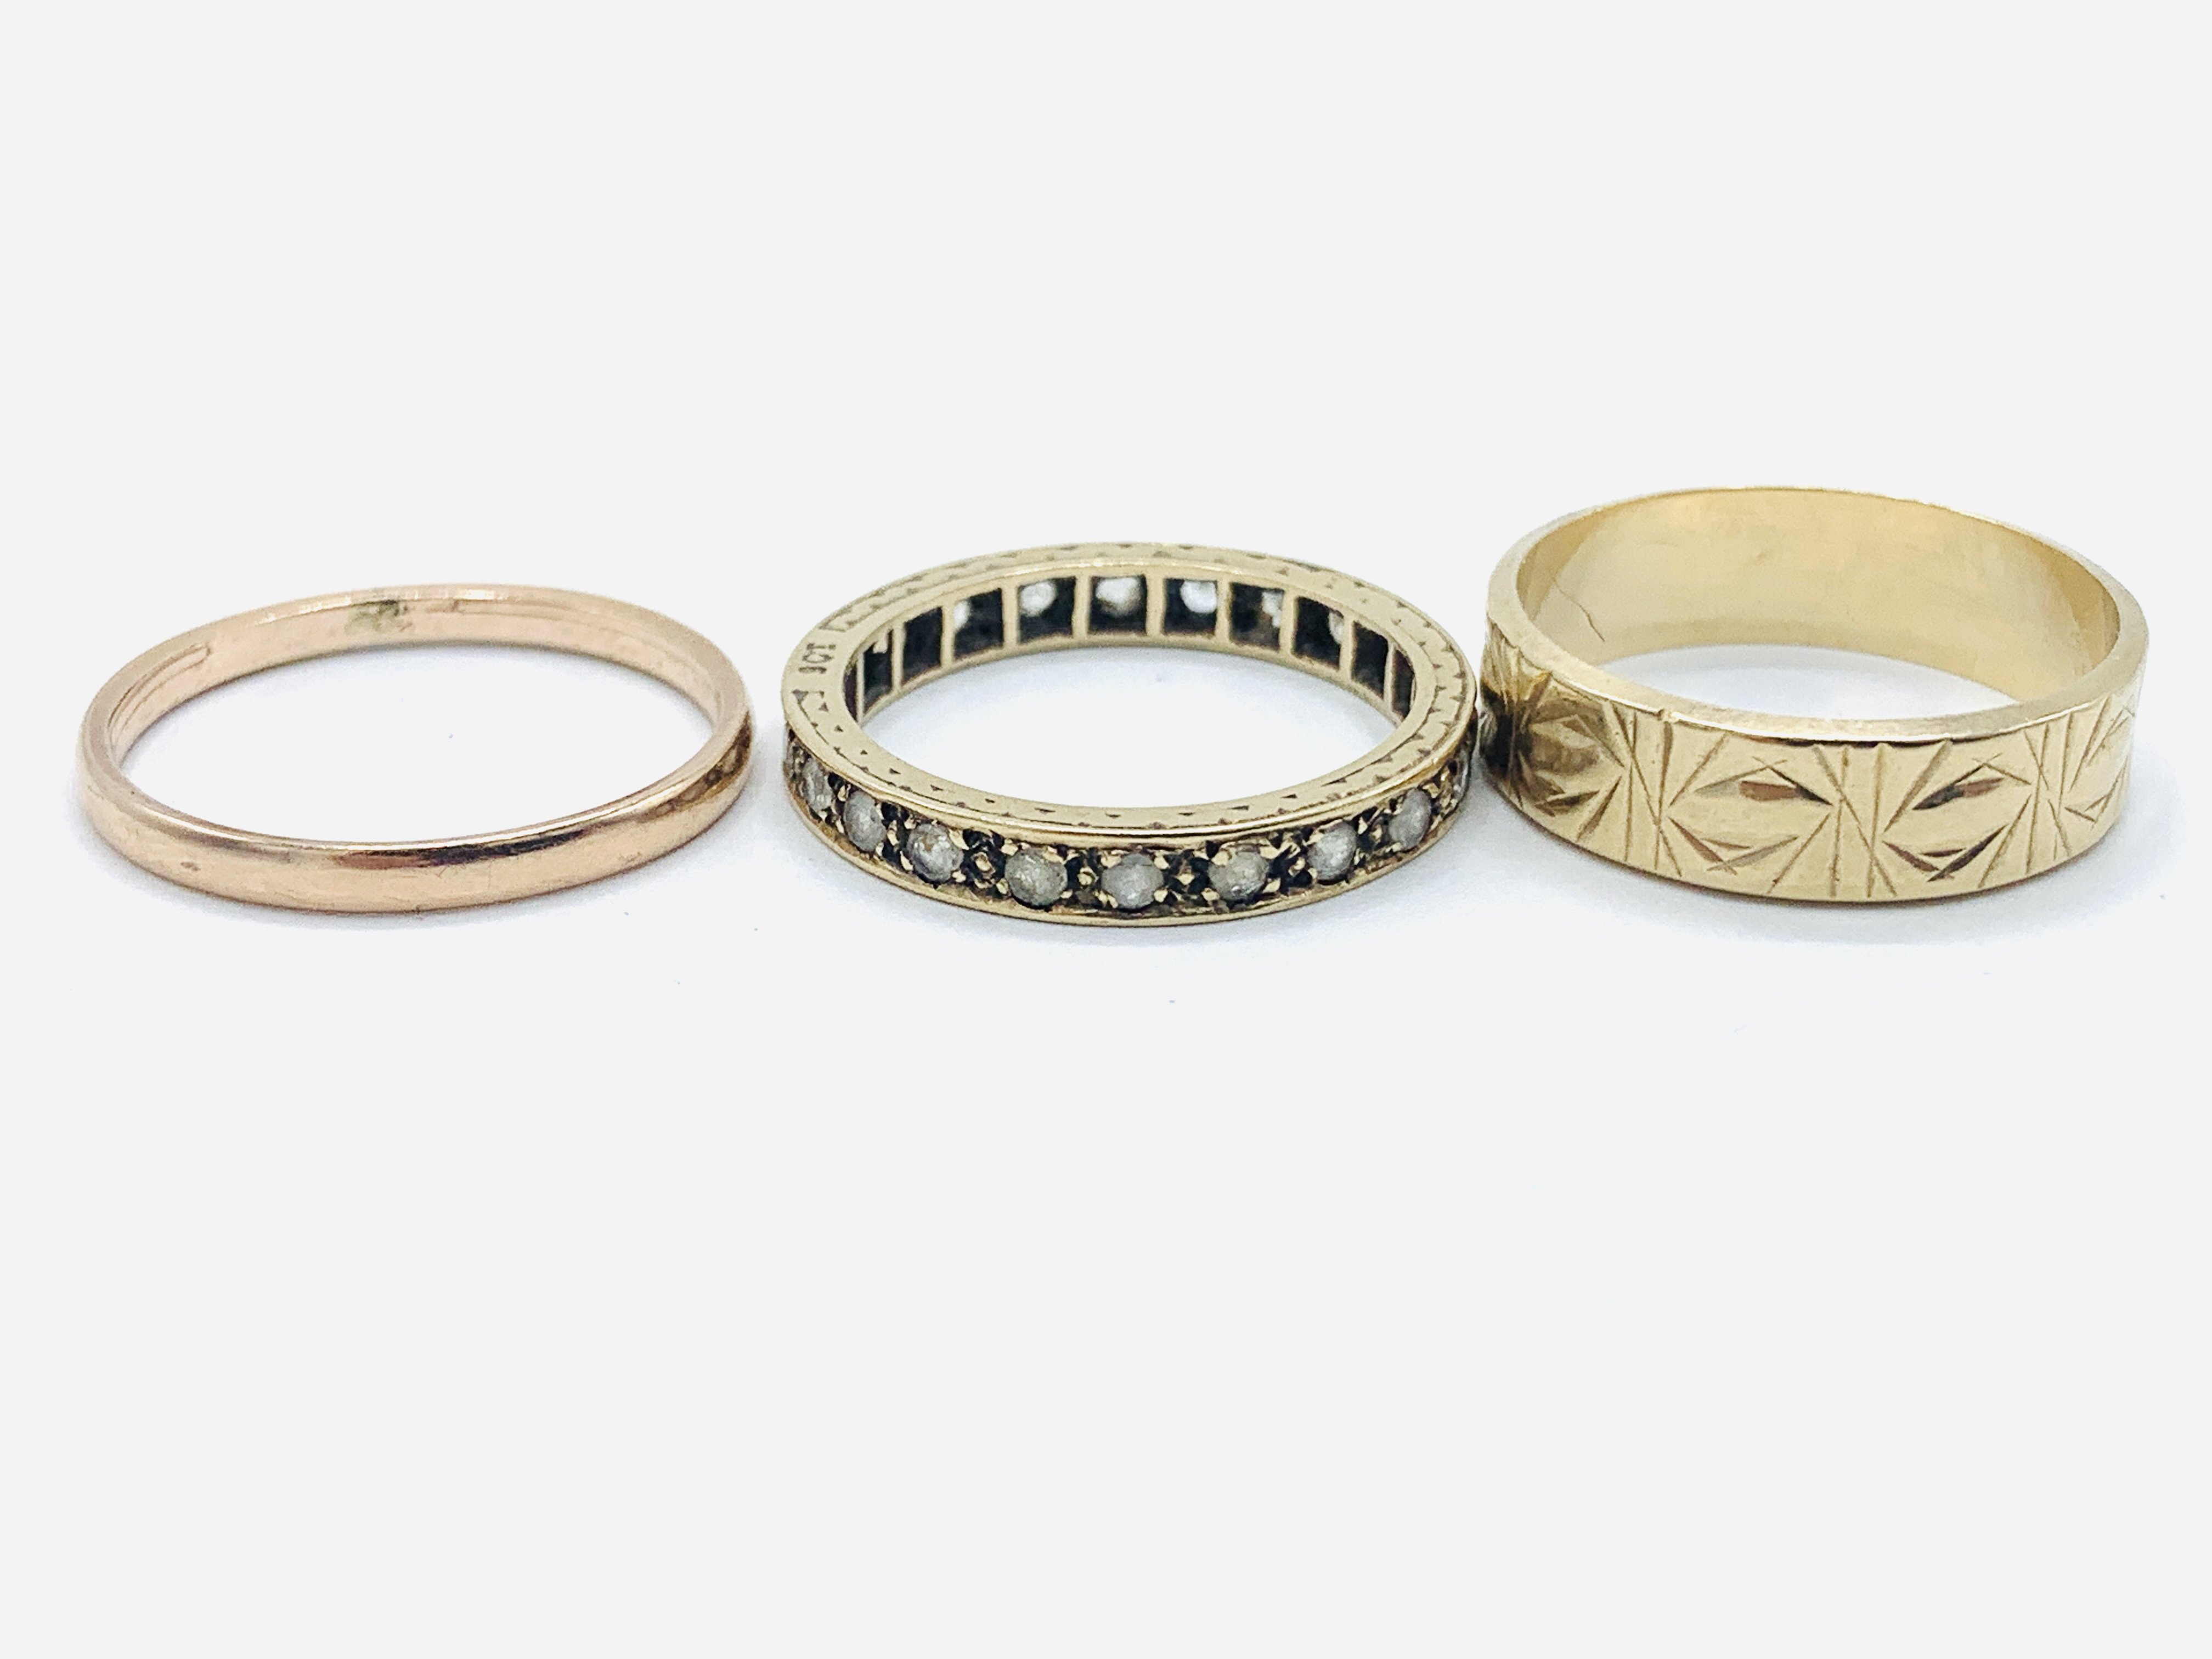 A 9ct gold band, a 9ct gold decorated band; and a 9ct gold and white stone eternity ring - Image 3 of 3